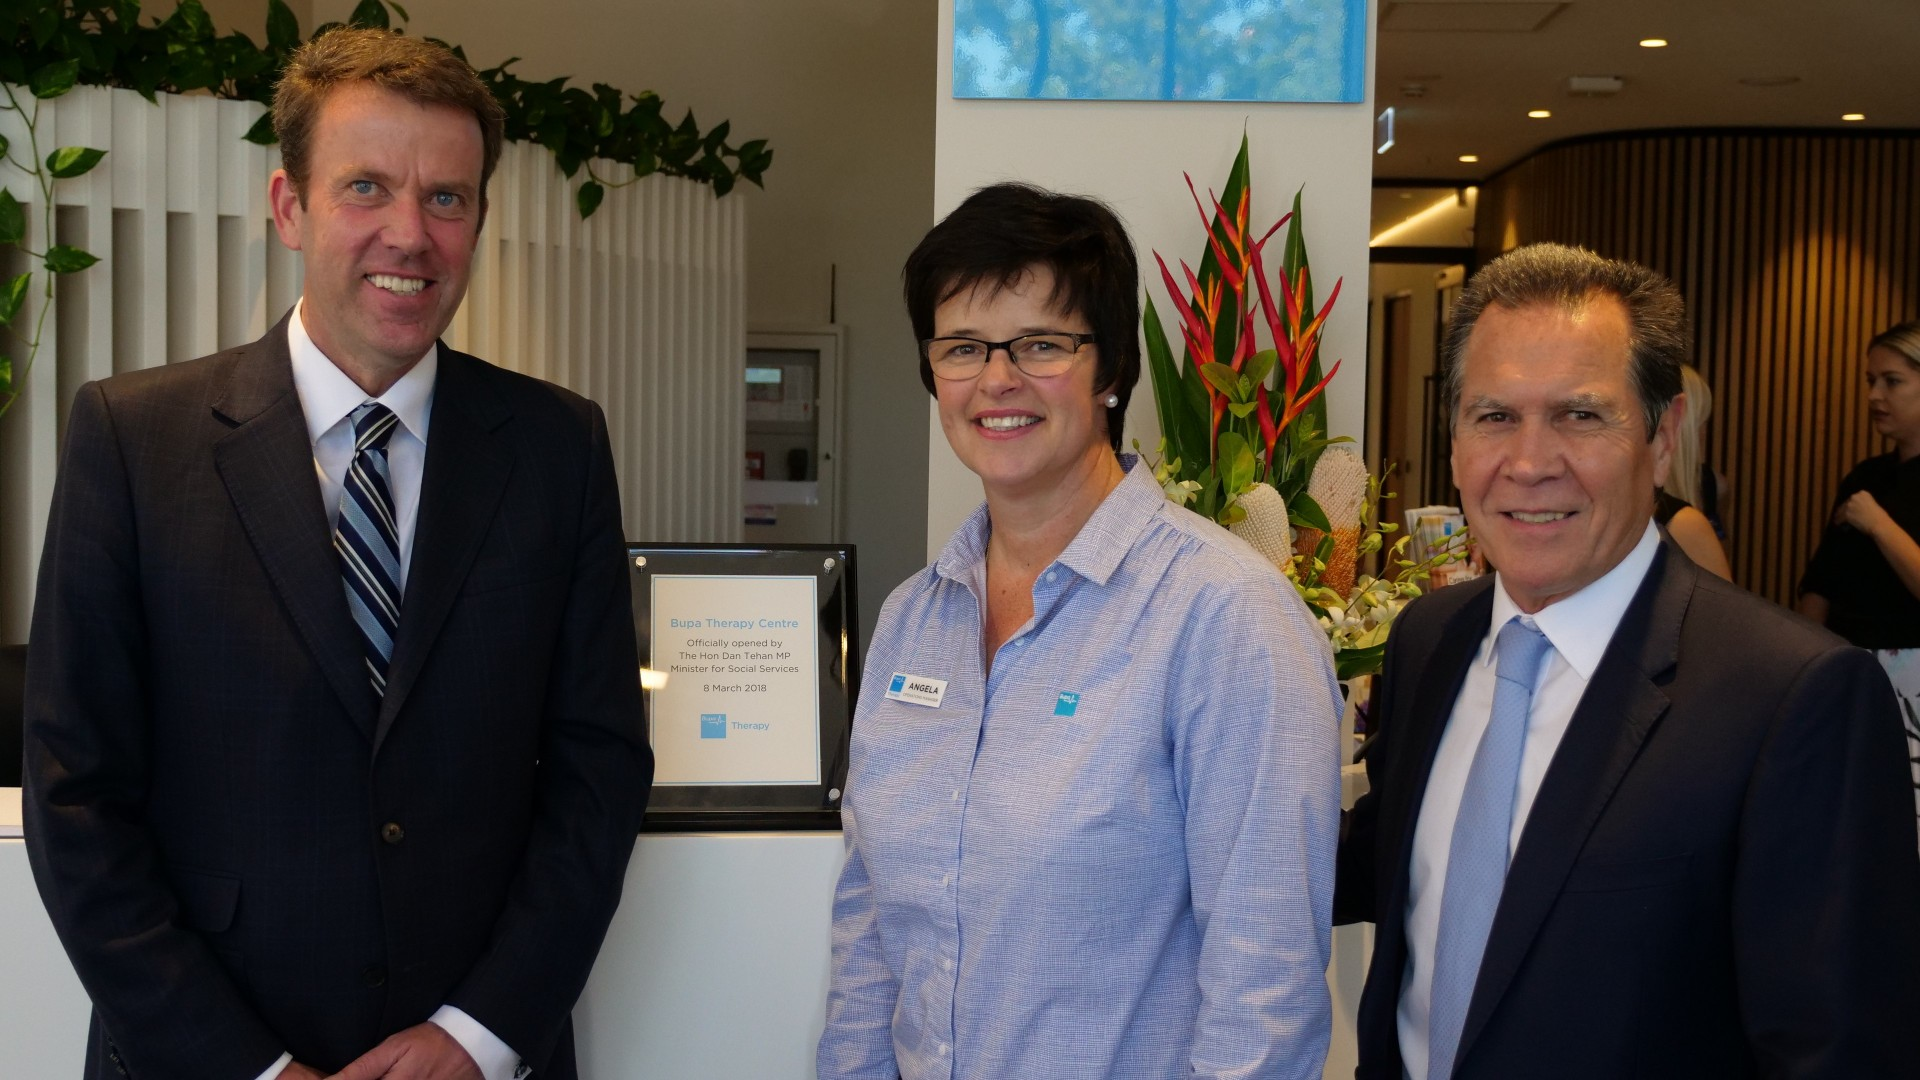 Minister Dan Tehan, Bupa Therapy's Angela Aldous and Richard Bowden, Bupa ANZ CEO